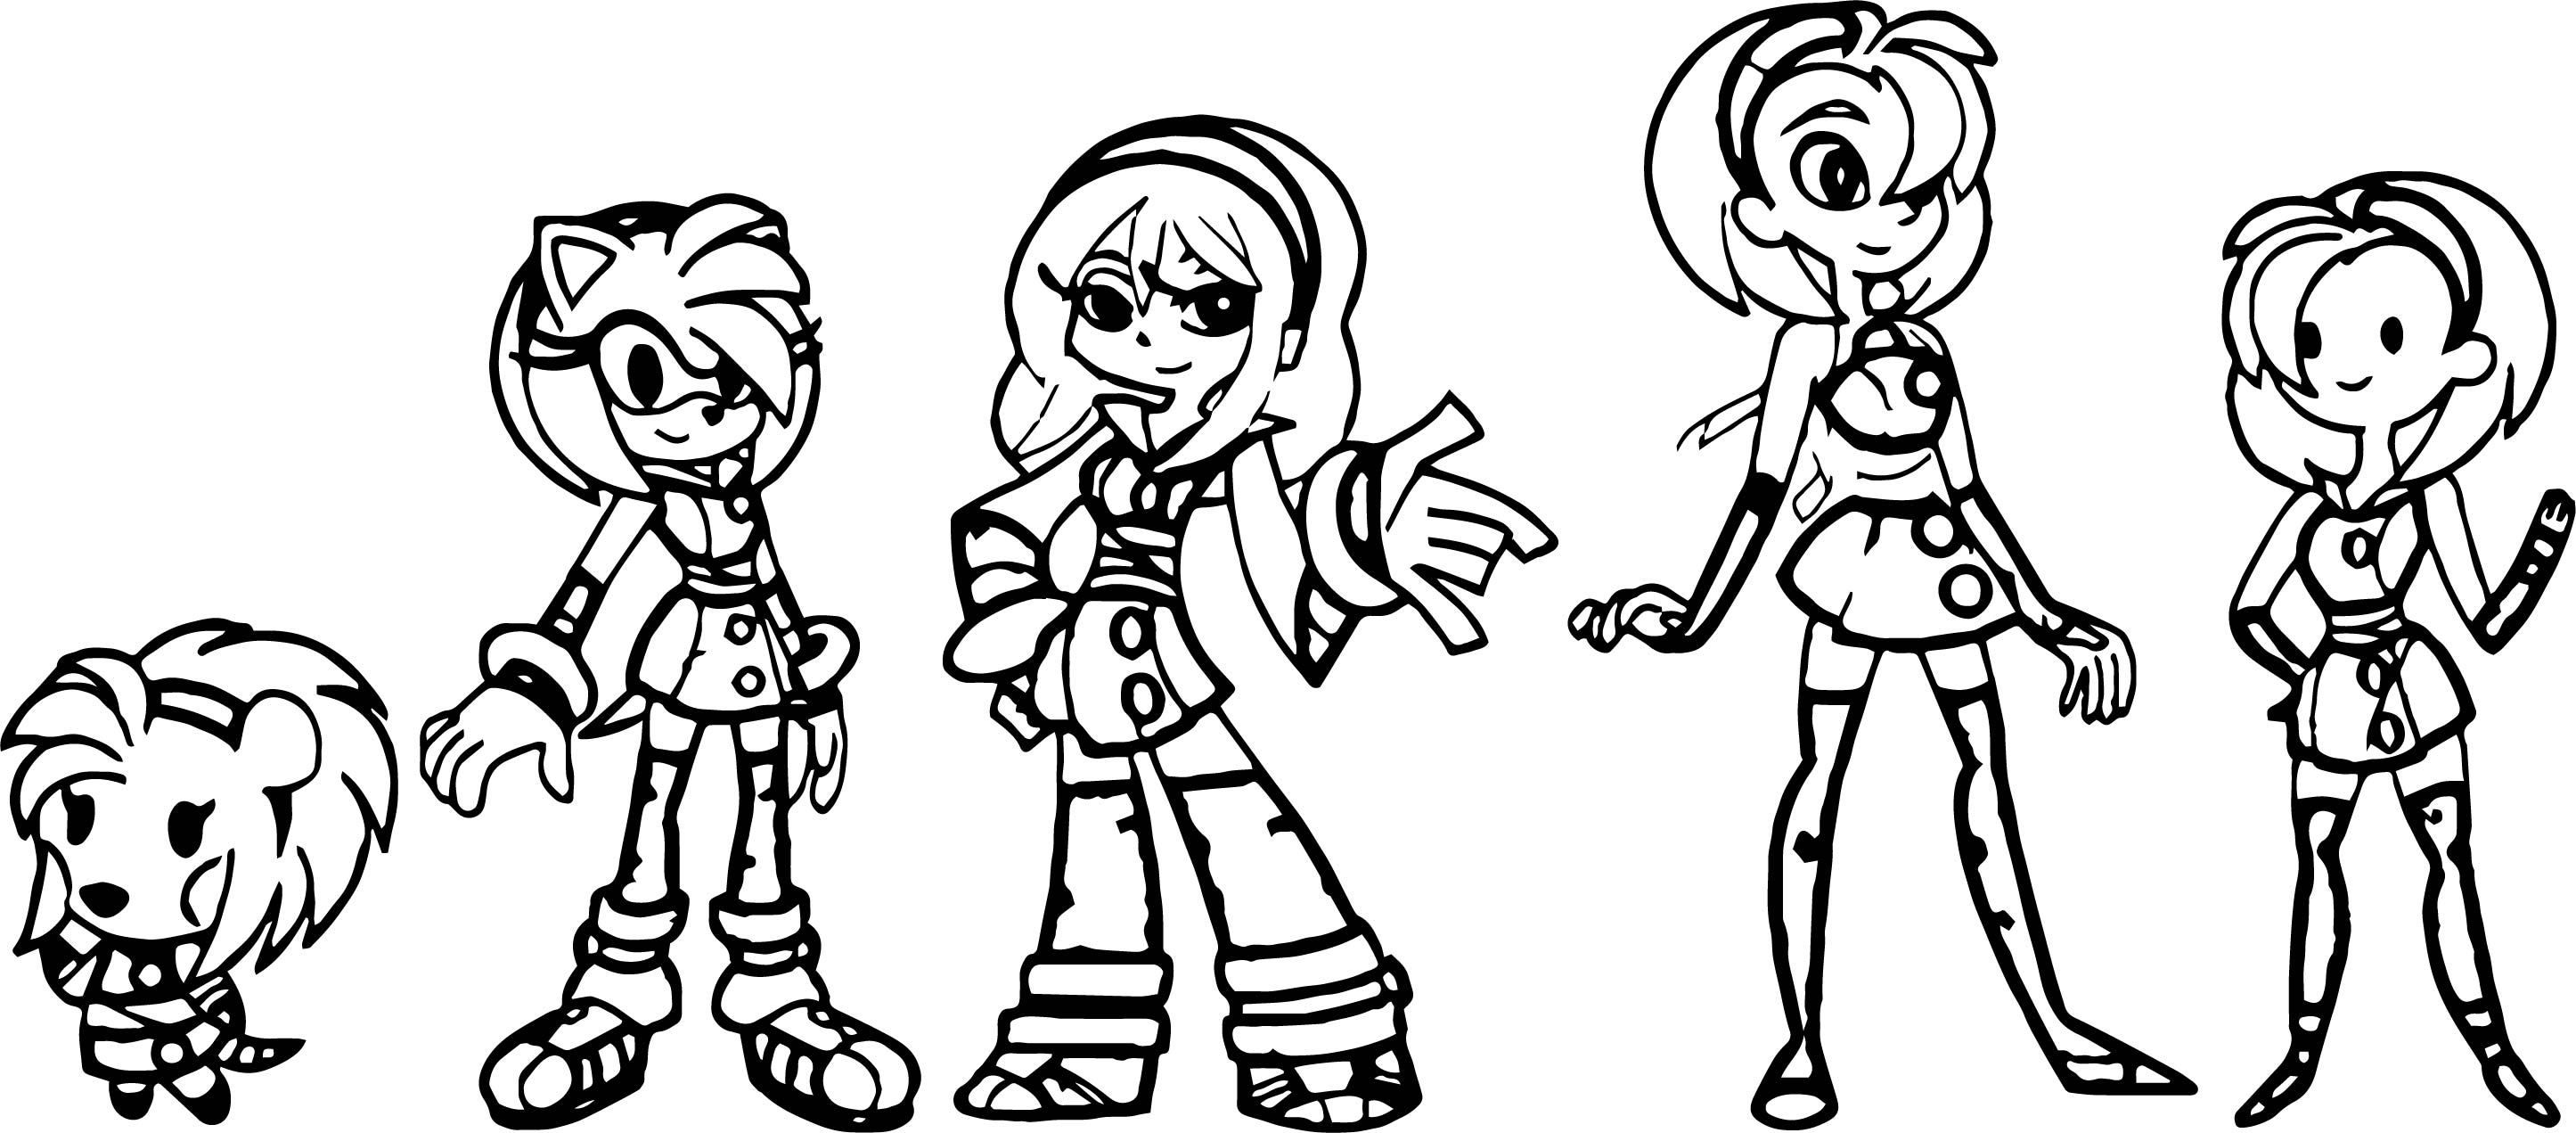 Amy Rose And Friends Coloring Pages